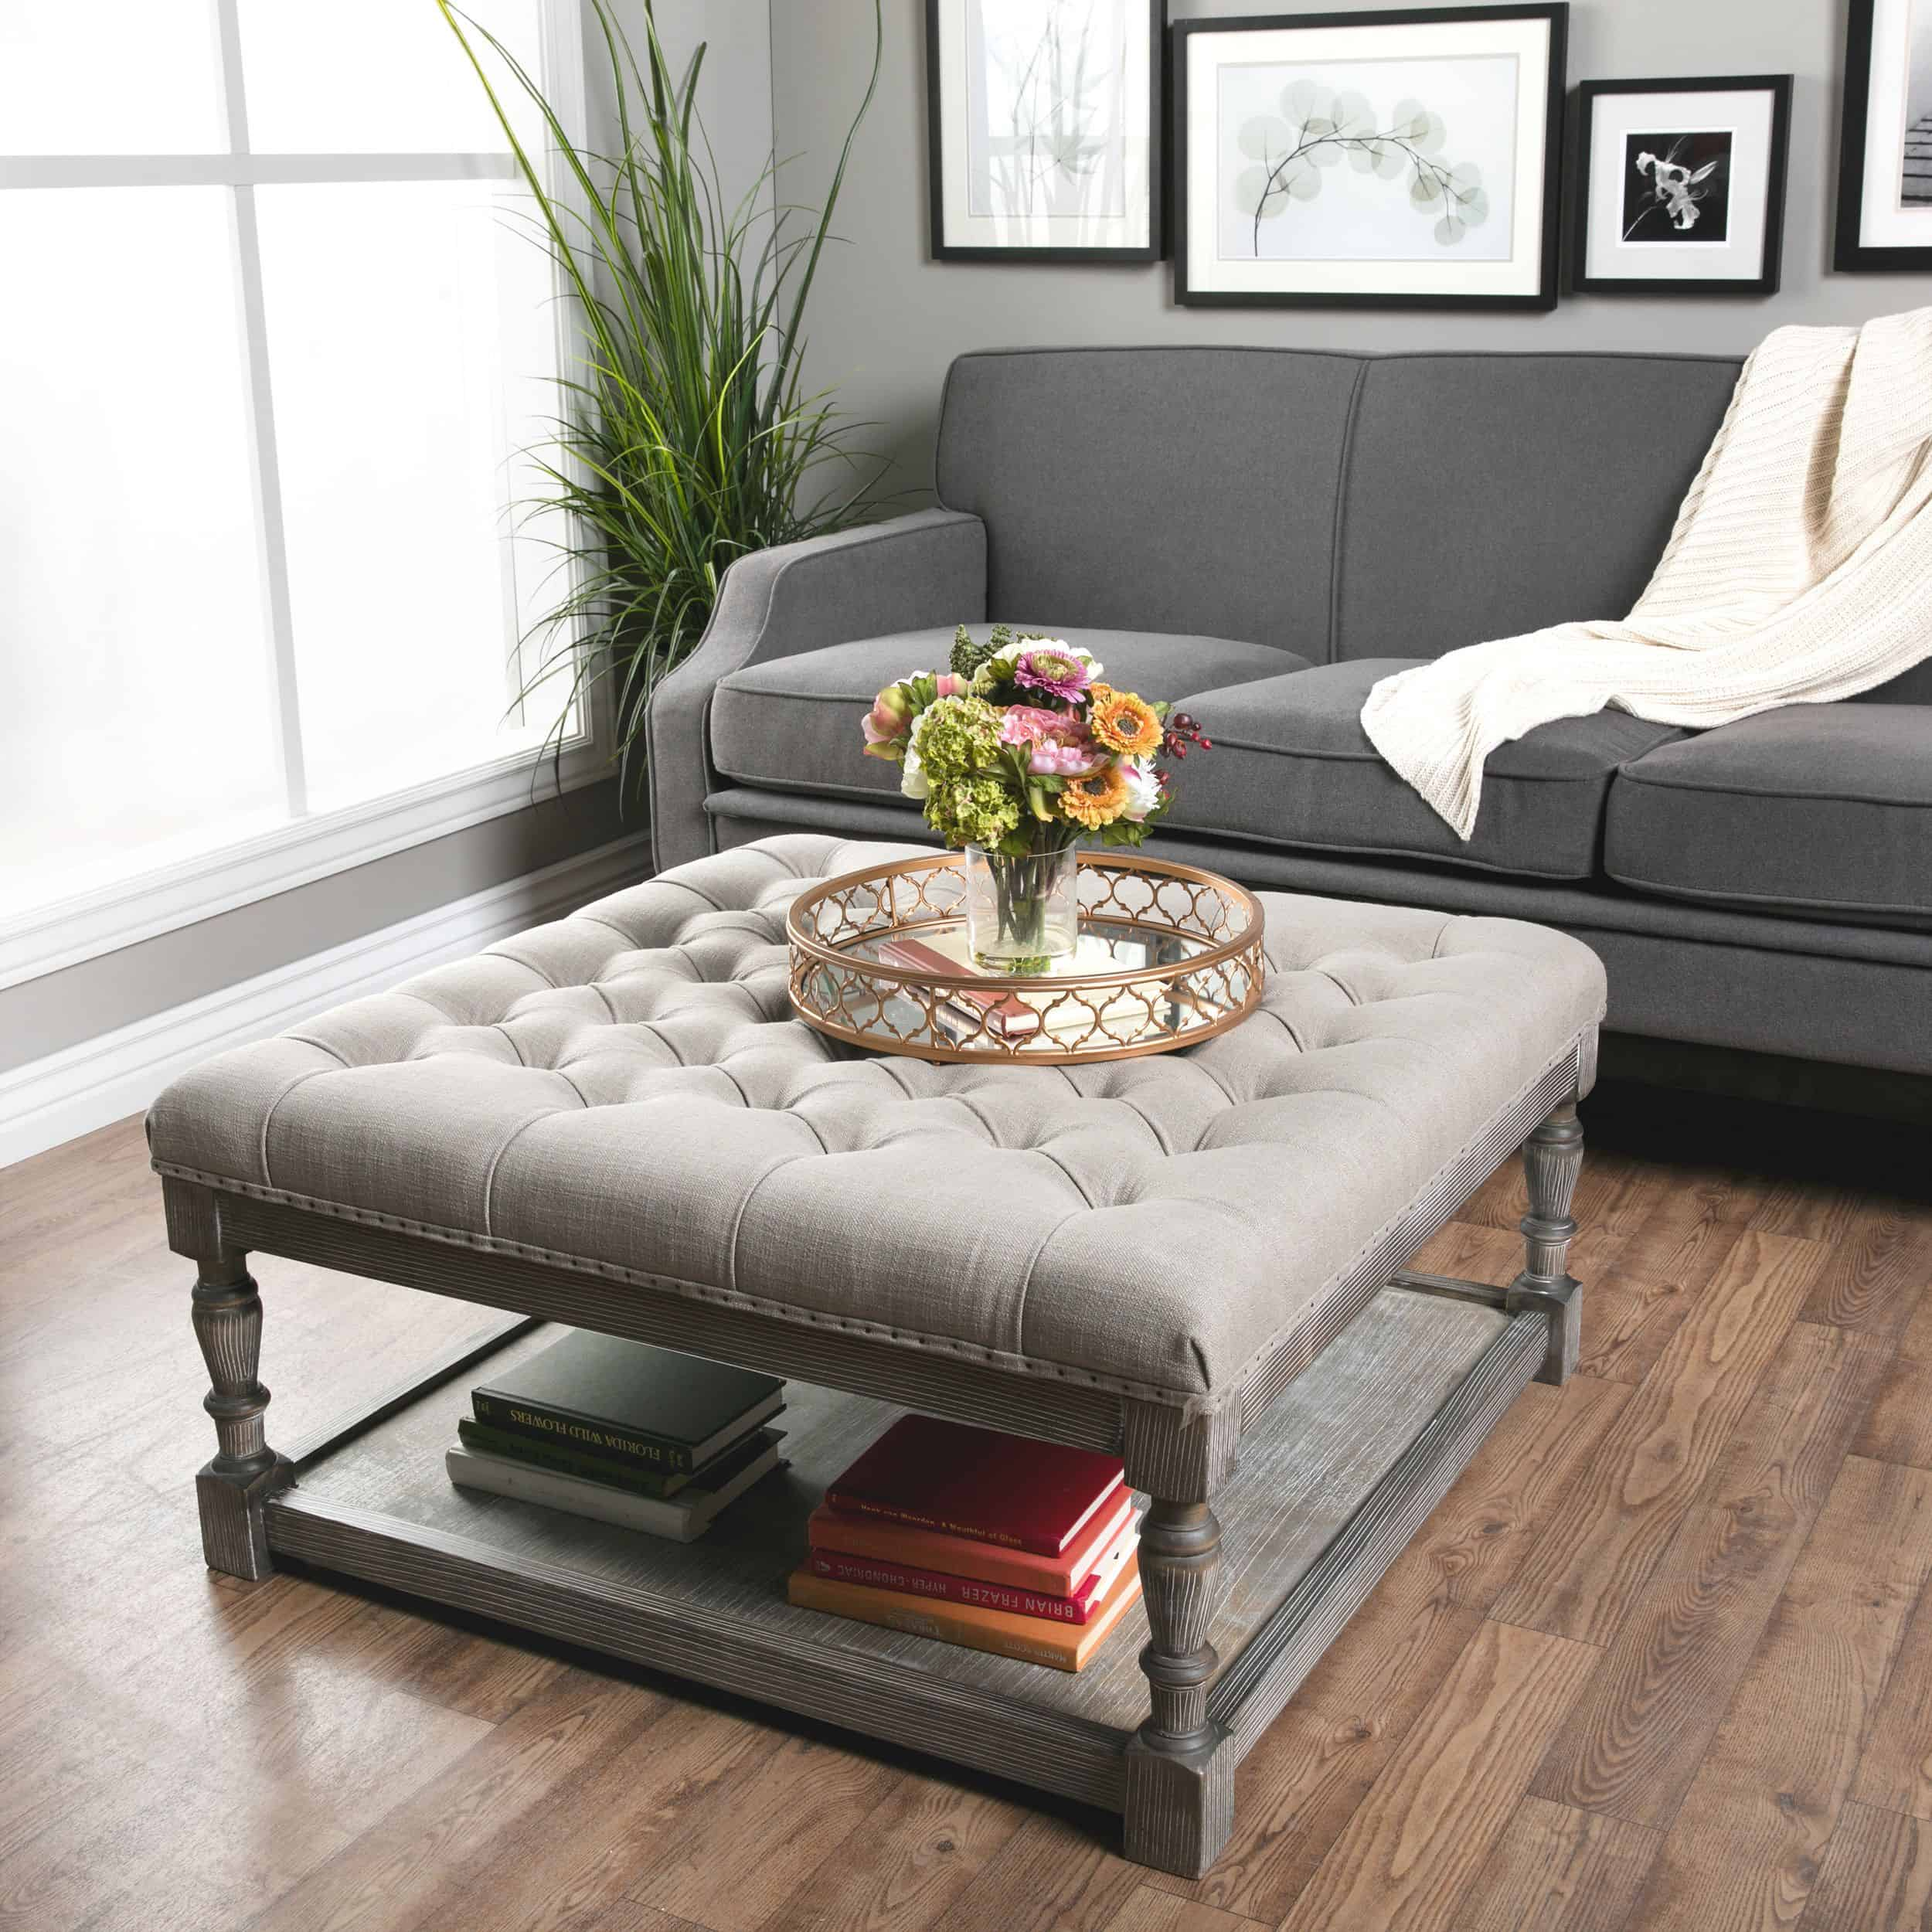 Large Ottoman Coffee Table Tray: 12 Best Ways To Decorate A Coffee Table